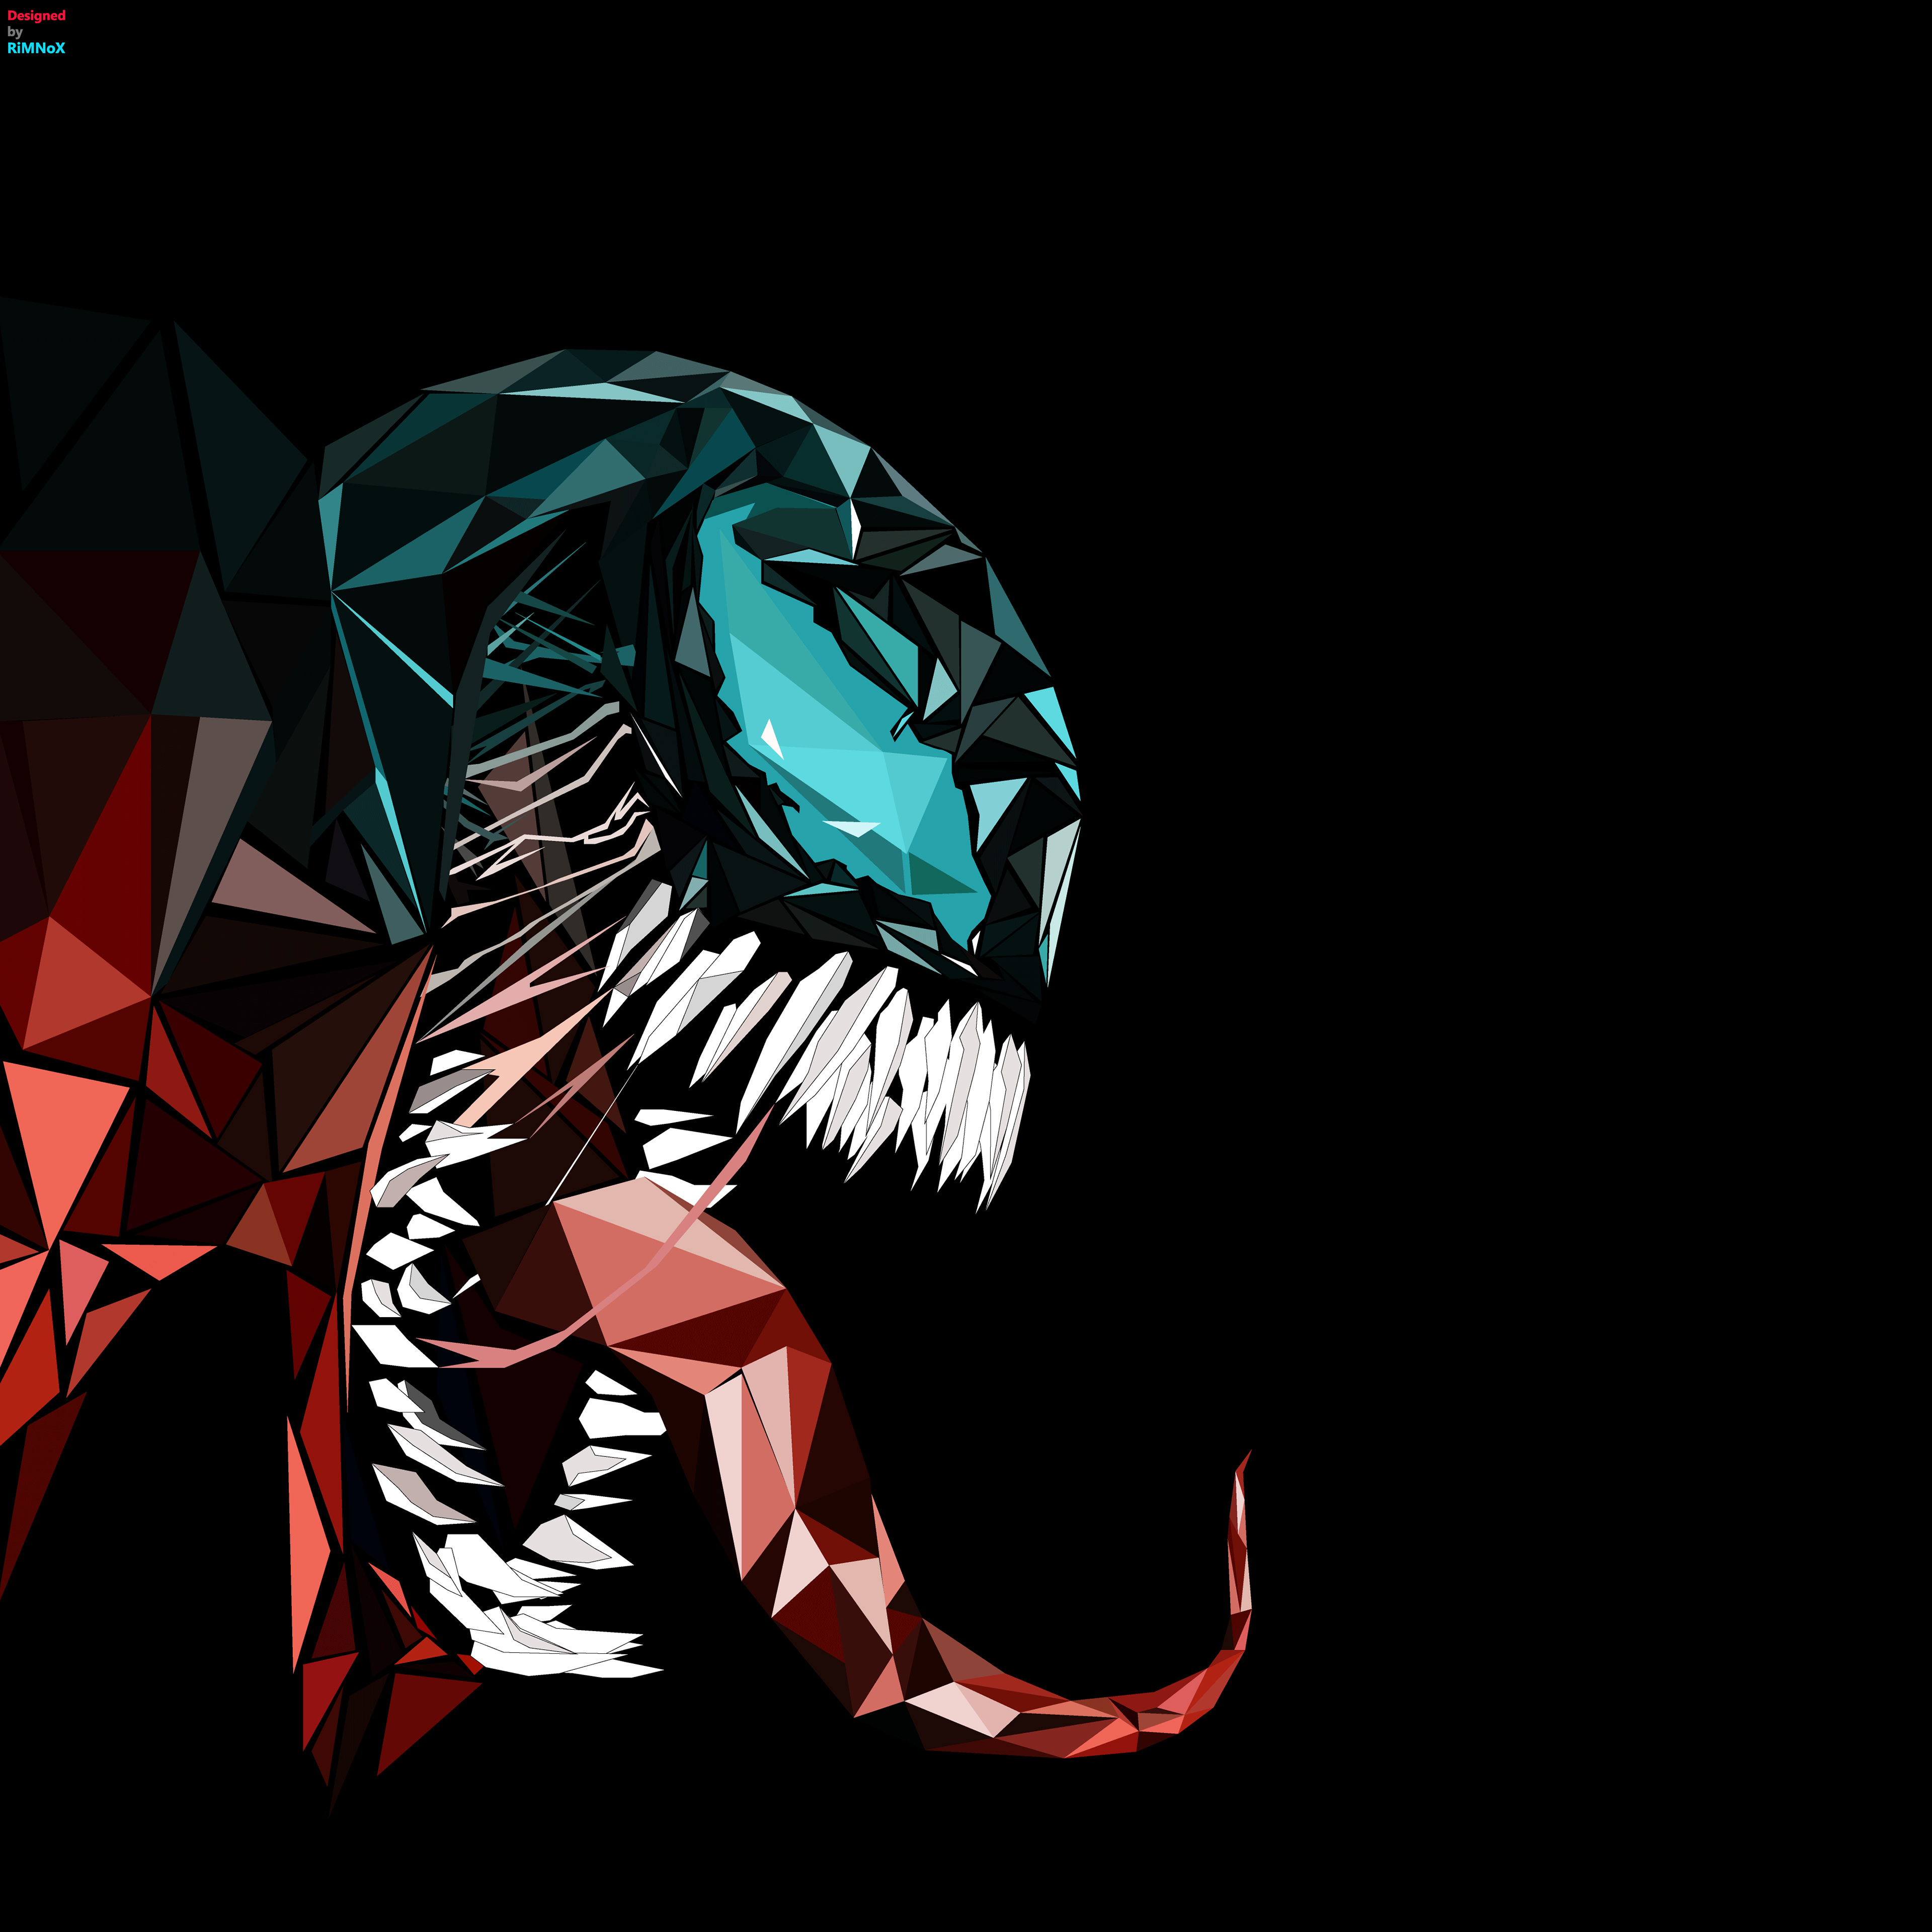 Venom Abstract 4k, HD Superheroes, 4k Wallpapers, Images